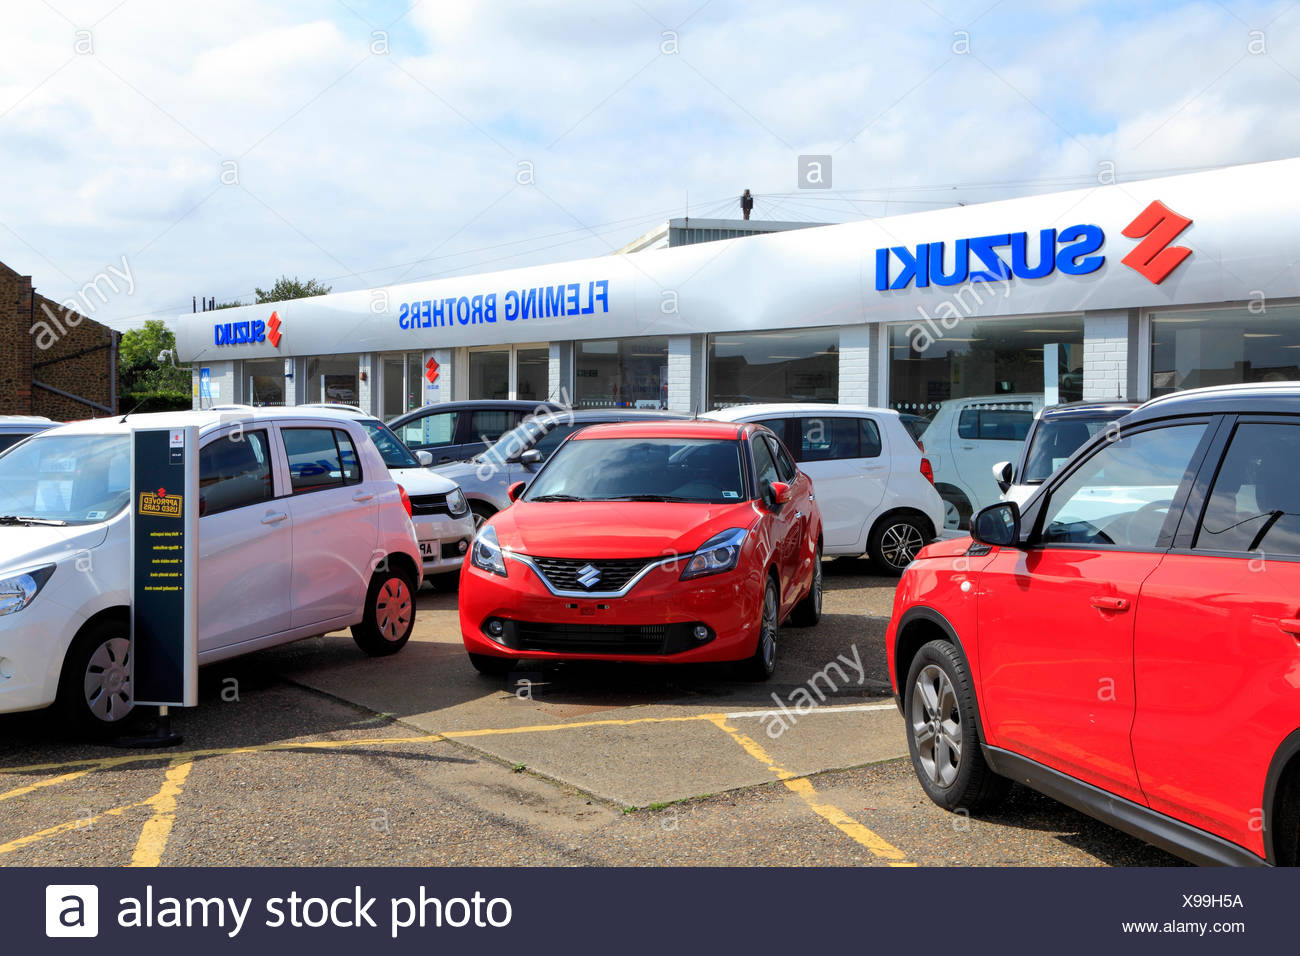 Suzuki Car Dealers Stock Photos & Suzuki Car Dealers Stock Images ...